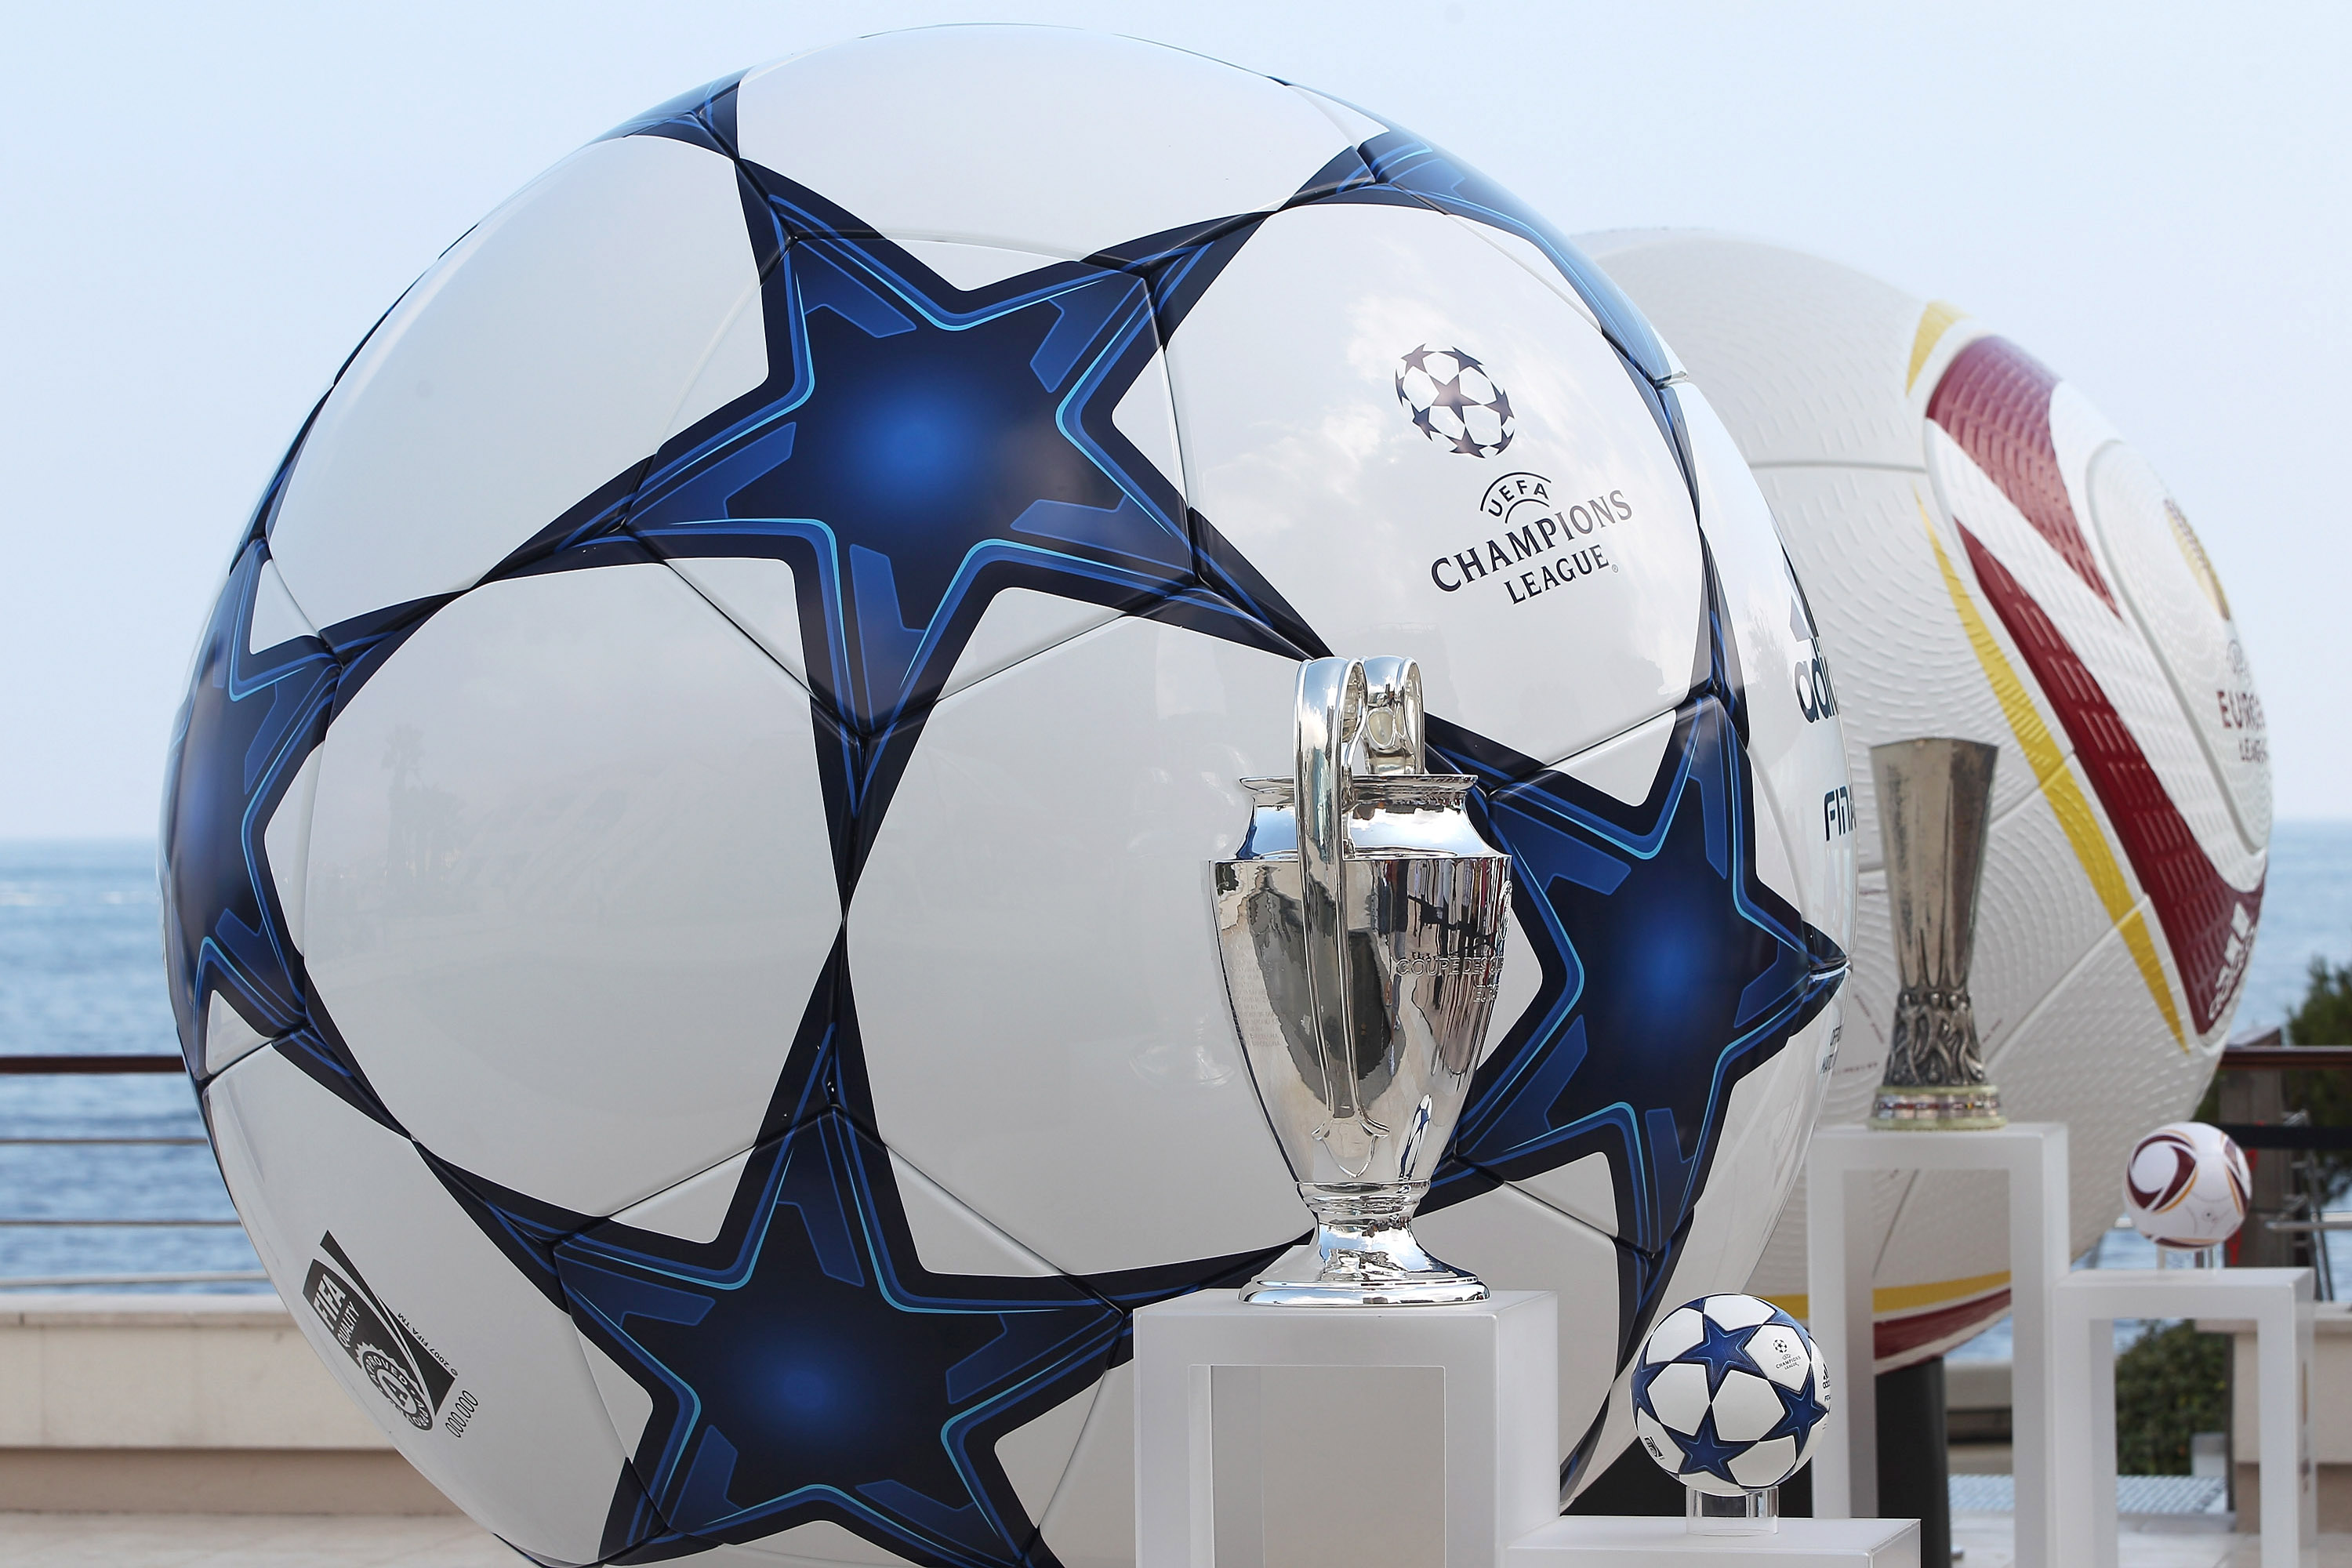 MONACO - AUGUST 26:  Adidas balls on show alongside the three main European club trophies, the Champions League, Europa League and Super Cup during the UEFA Champions League Group Stage draw at the Grimaldi Forum on August 26, 2010 in Monaco, Monaco.  (Ph